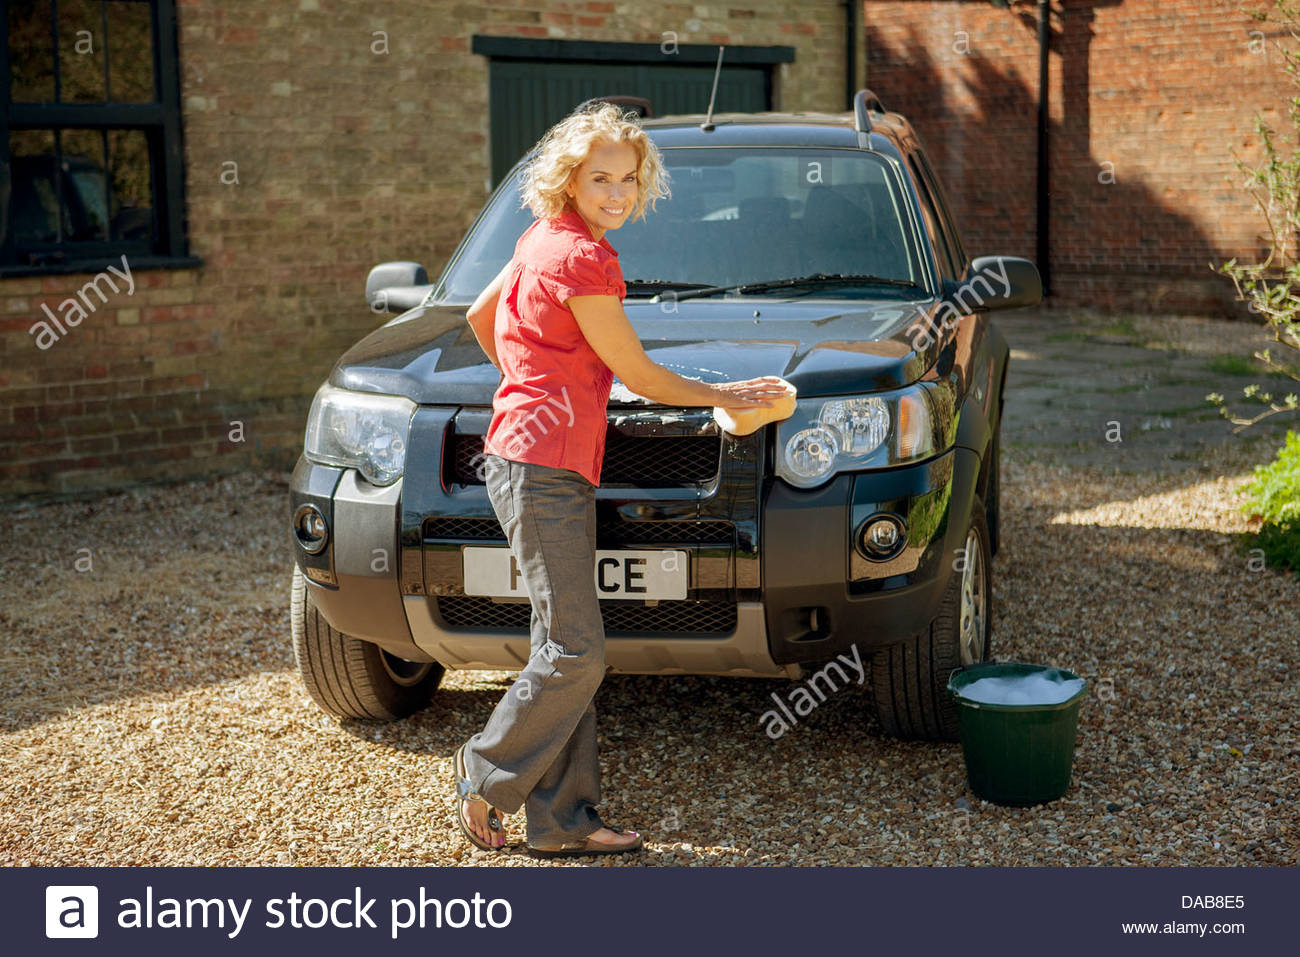 A mature woman washing a four wheel drive car - Stock Image